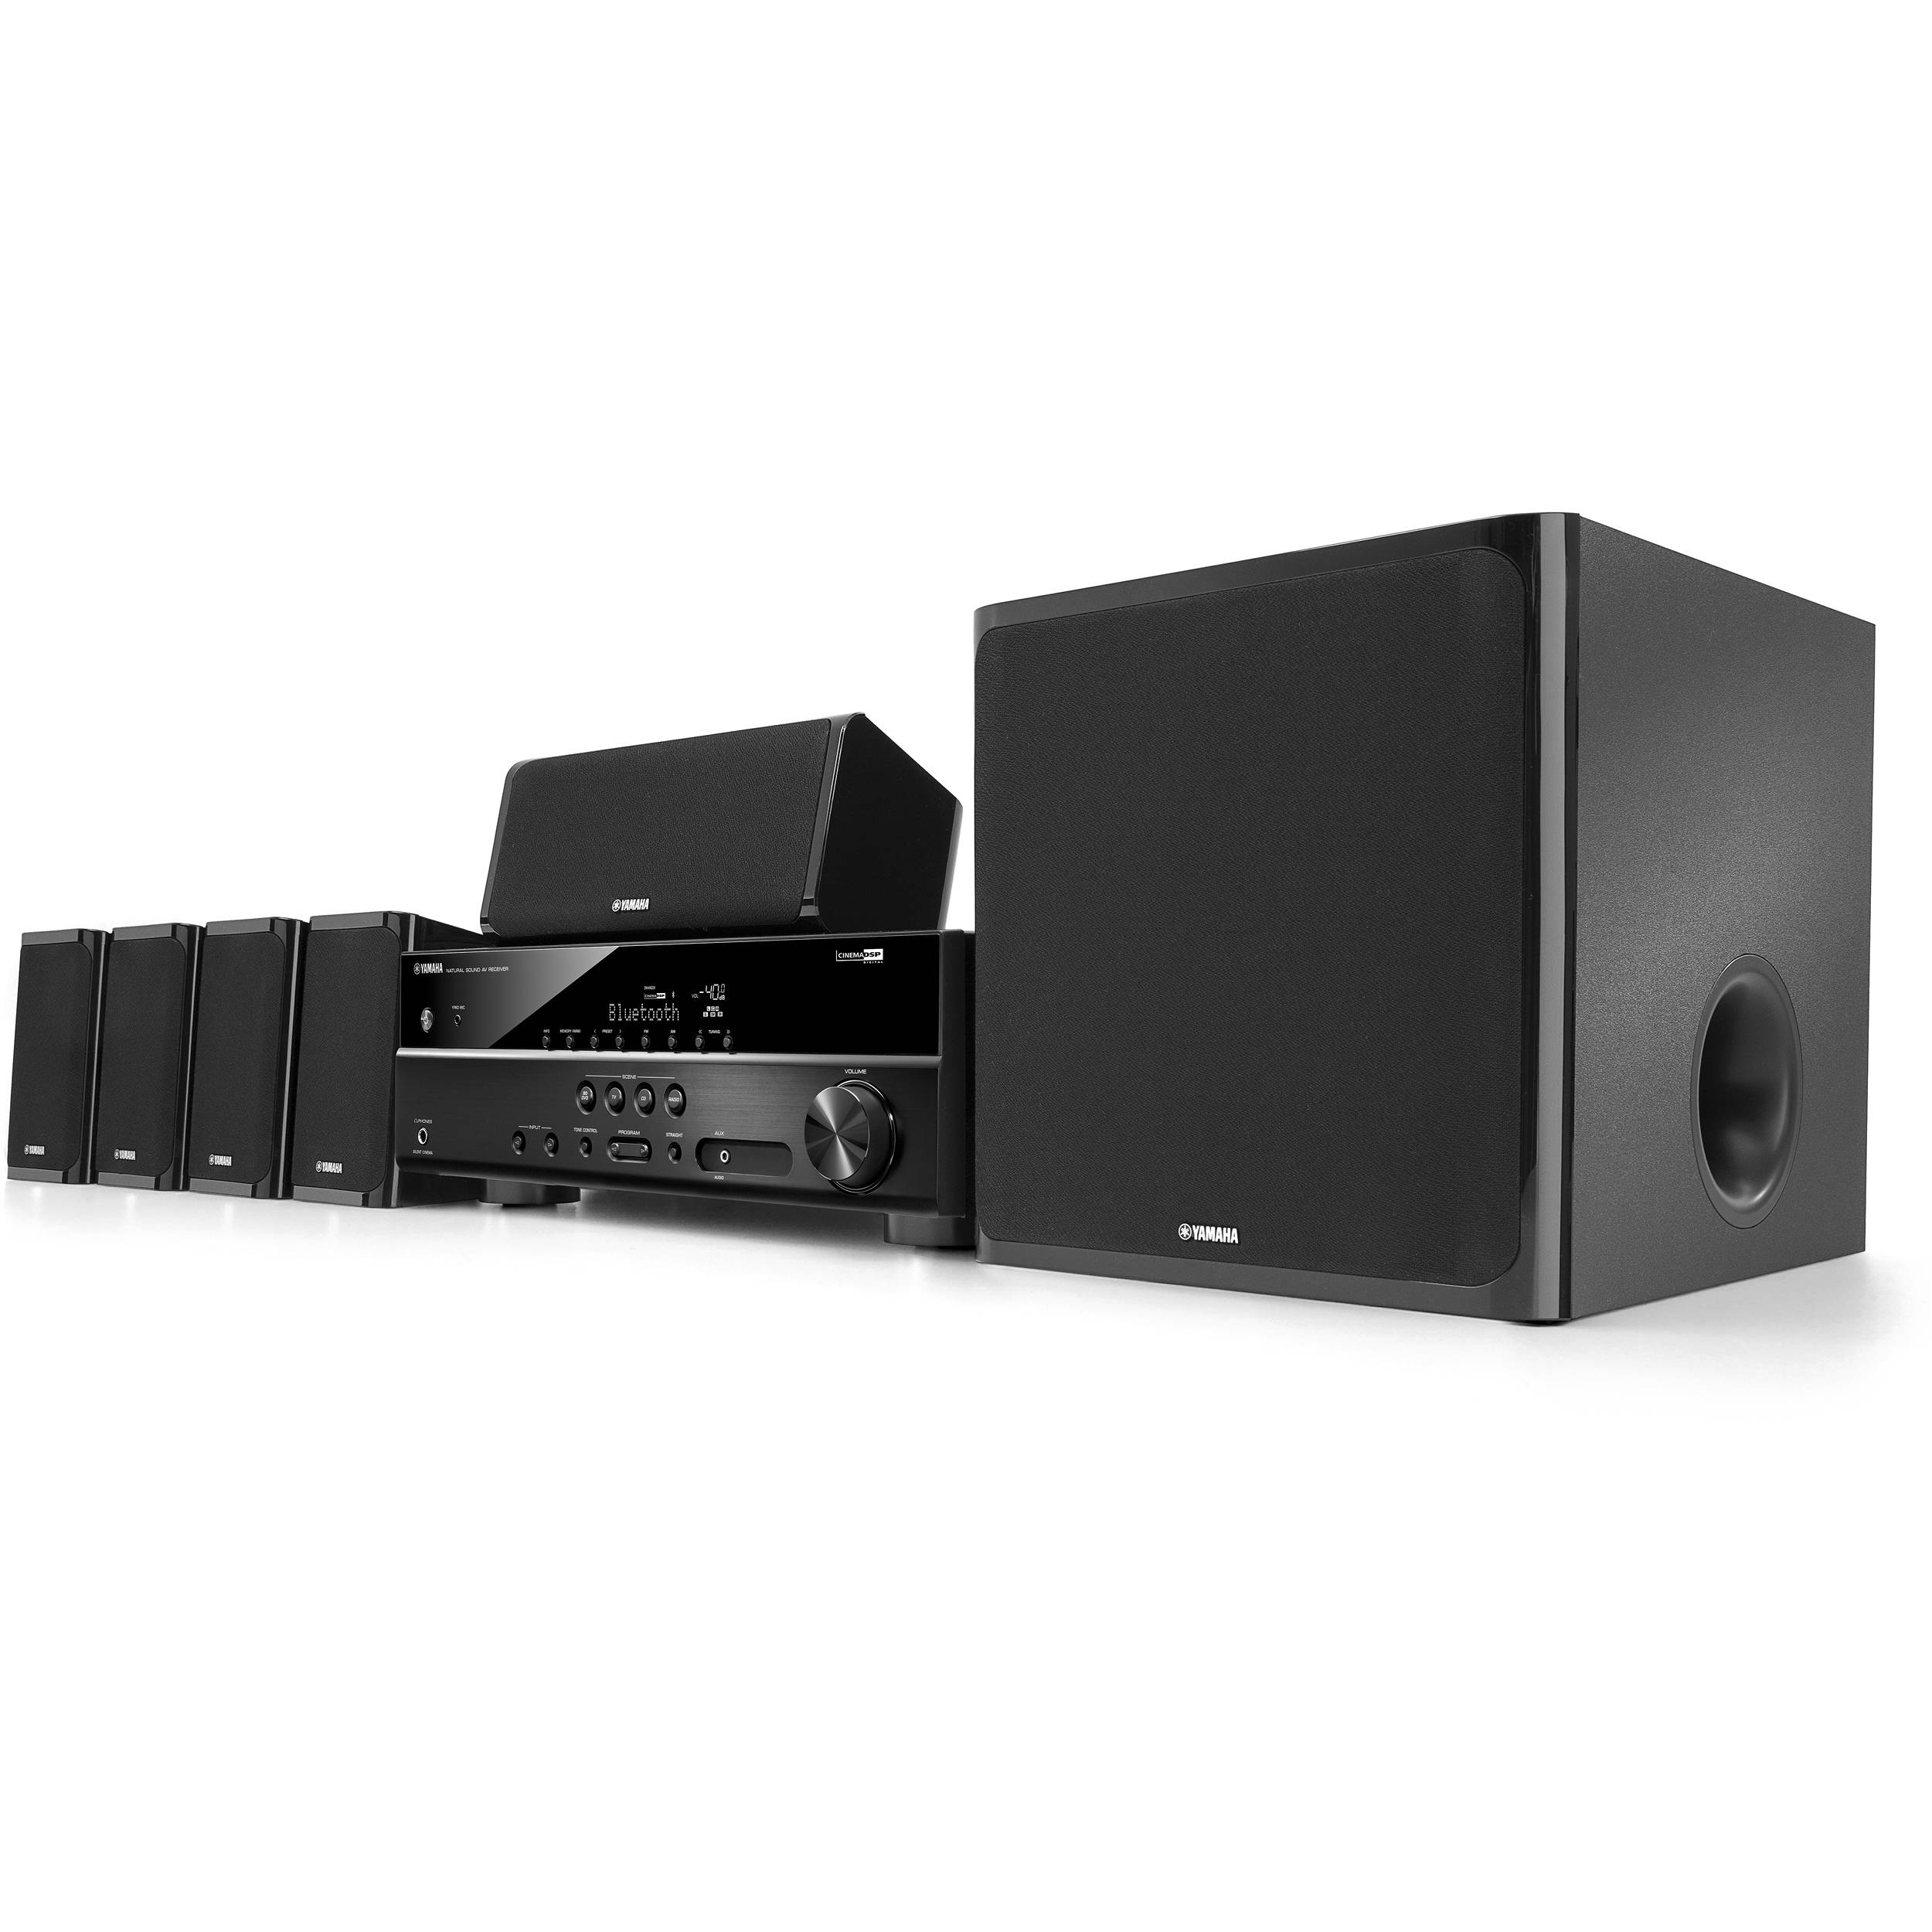 yamaha yht 4920ubl 5 1 channel home theater in a box yht. Black Bedroom Furniture Sets. Home Design Ideas